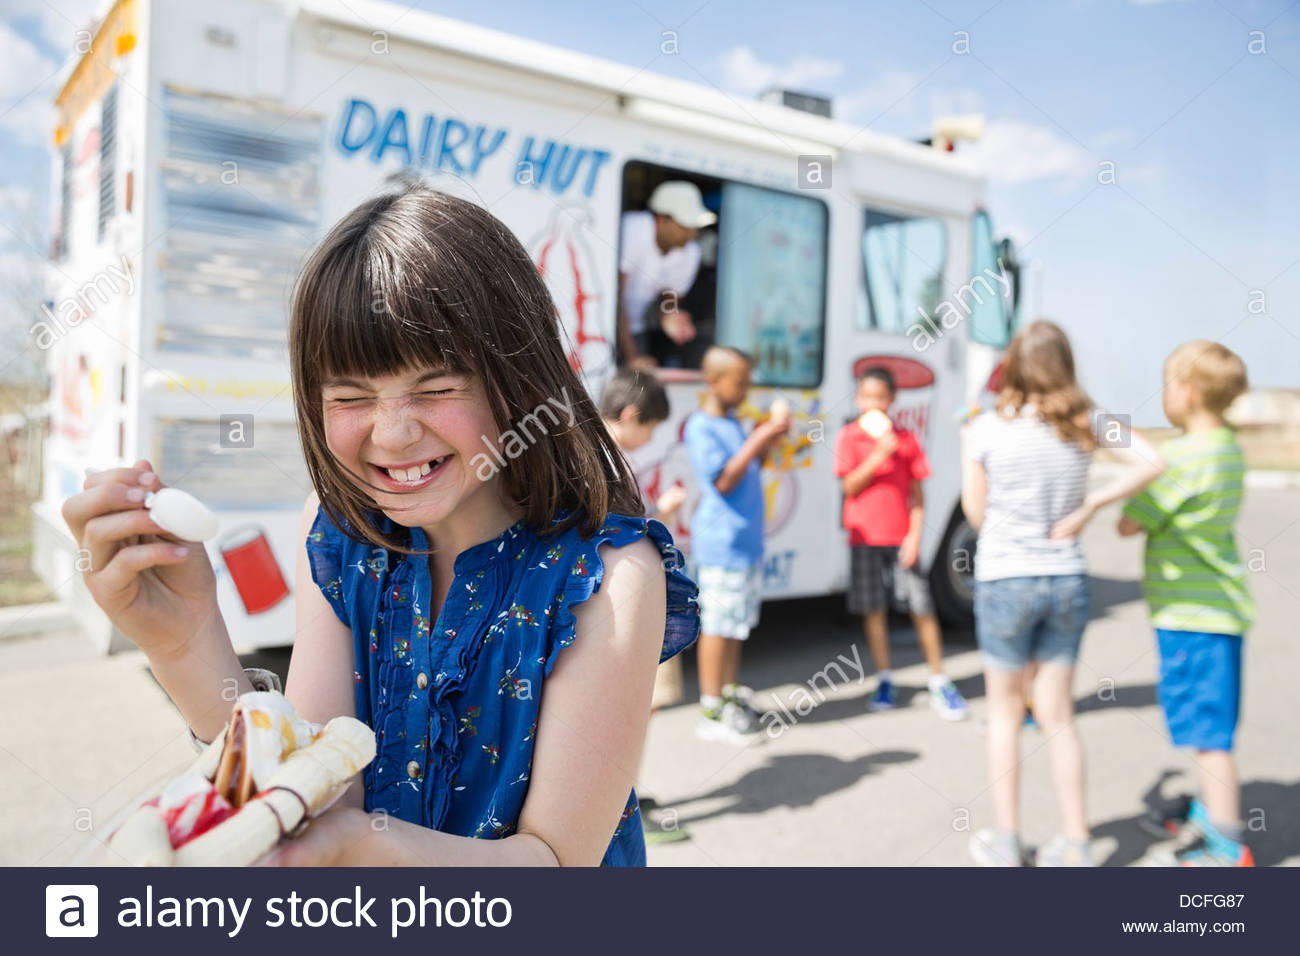 Girl laughing while eating banana split Photo Stock